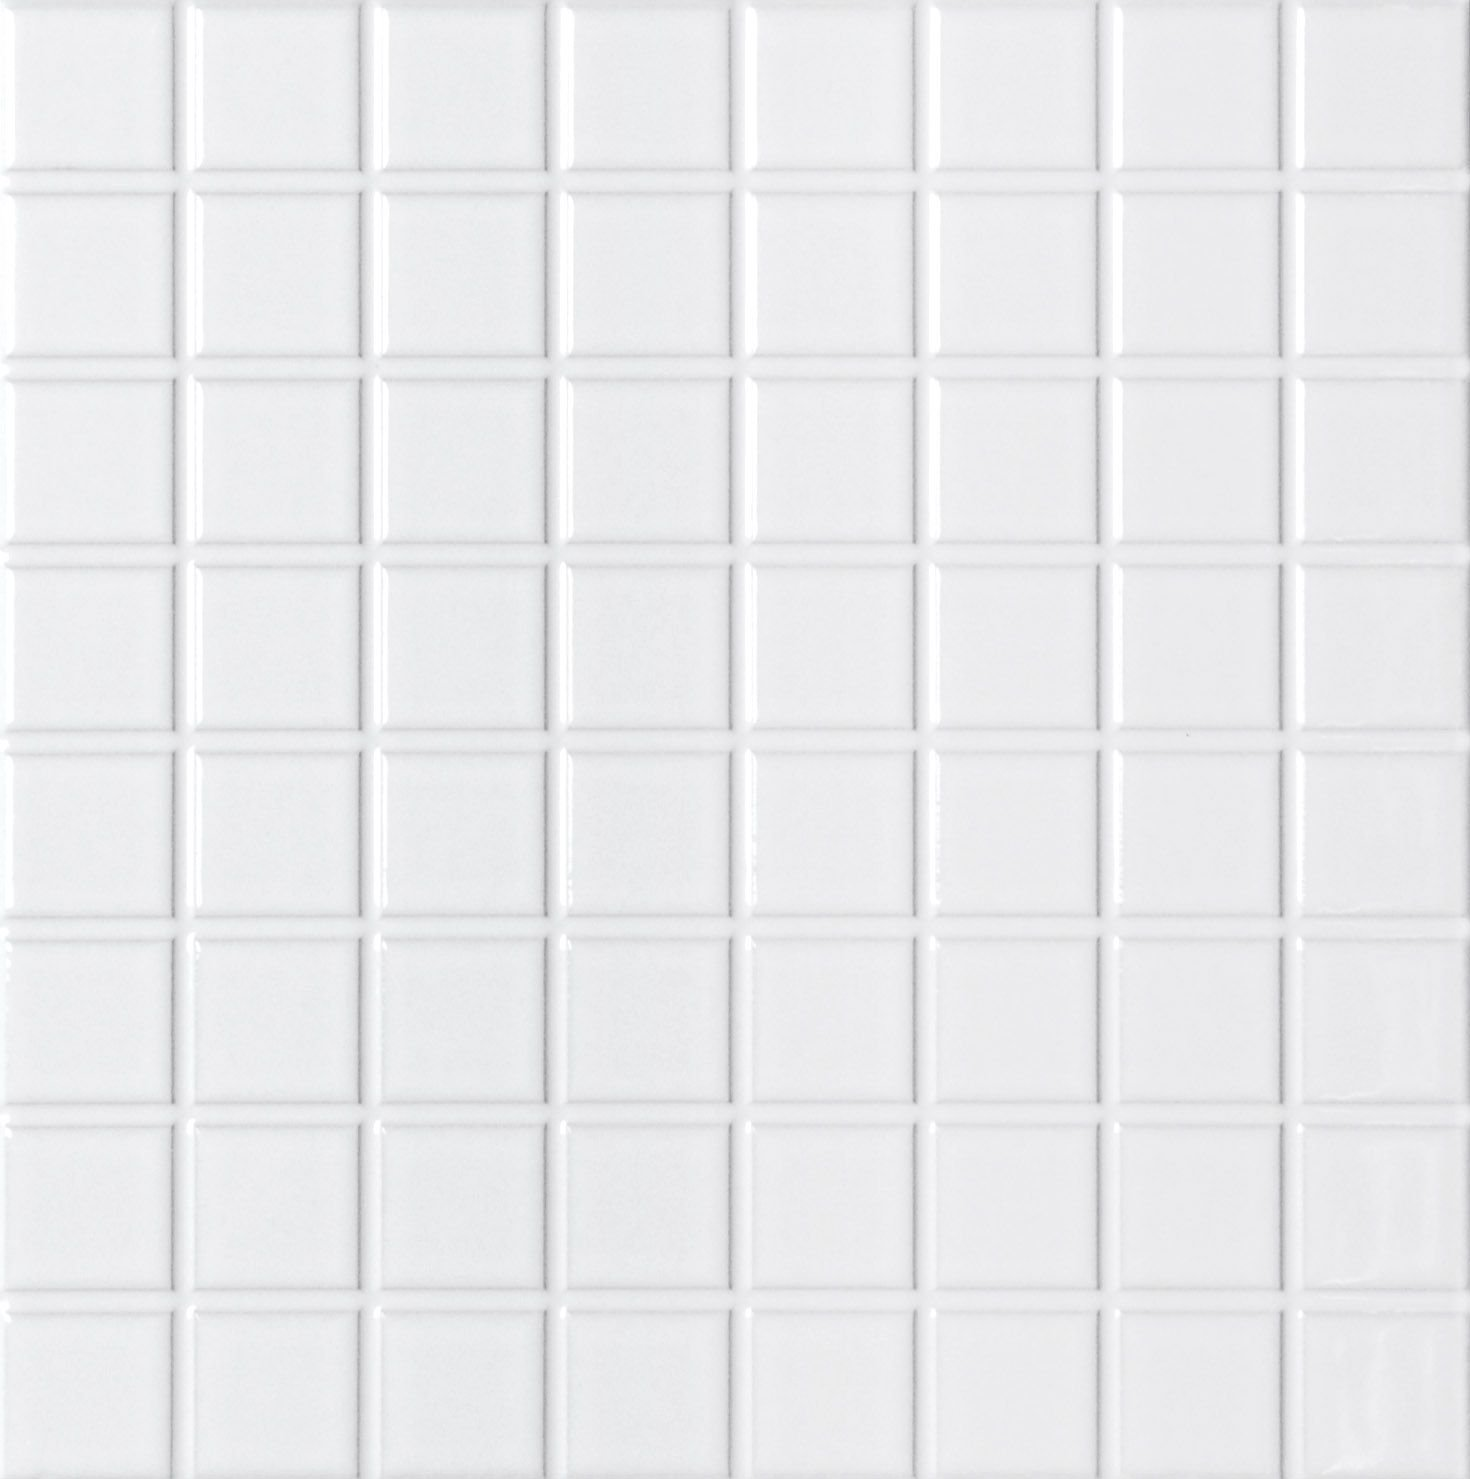 Carrelage mural blanc 15x15 28 images carrelage de for Carrelage mural blanc 11x11